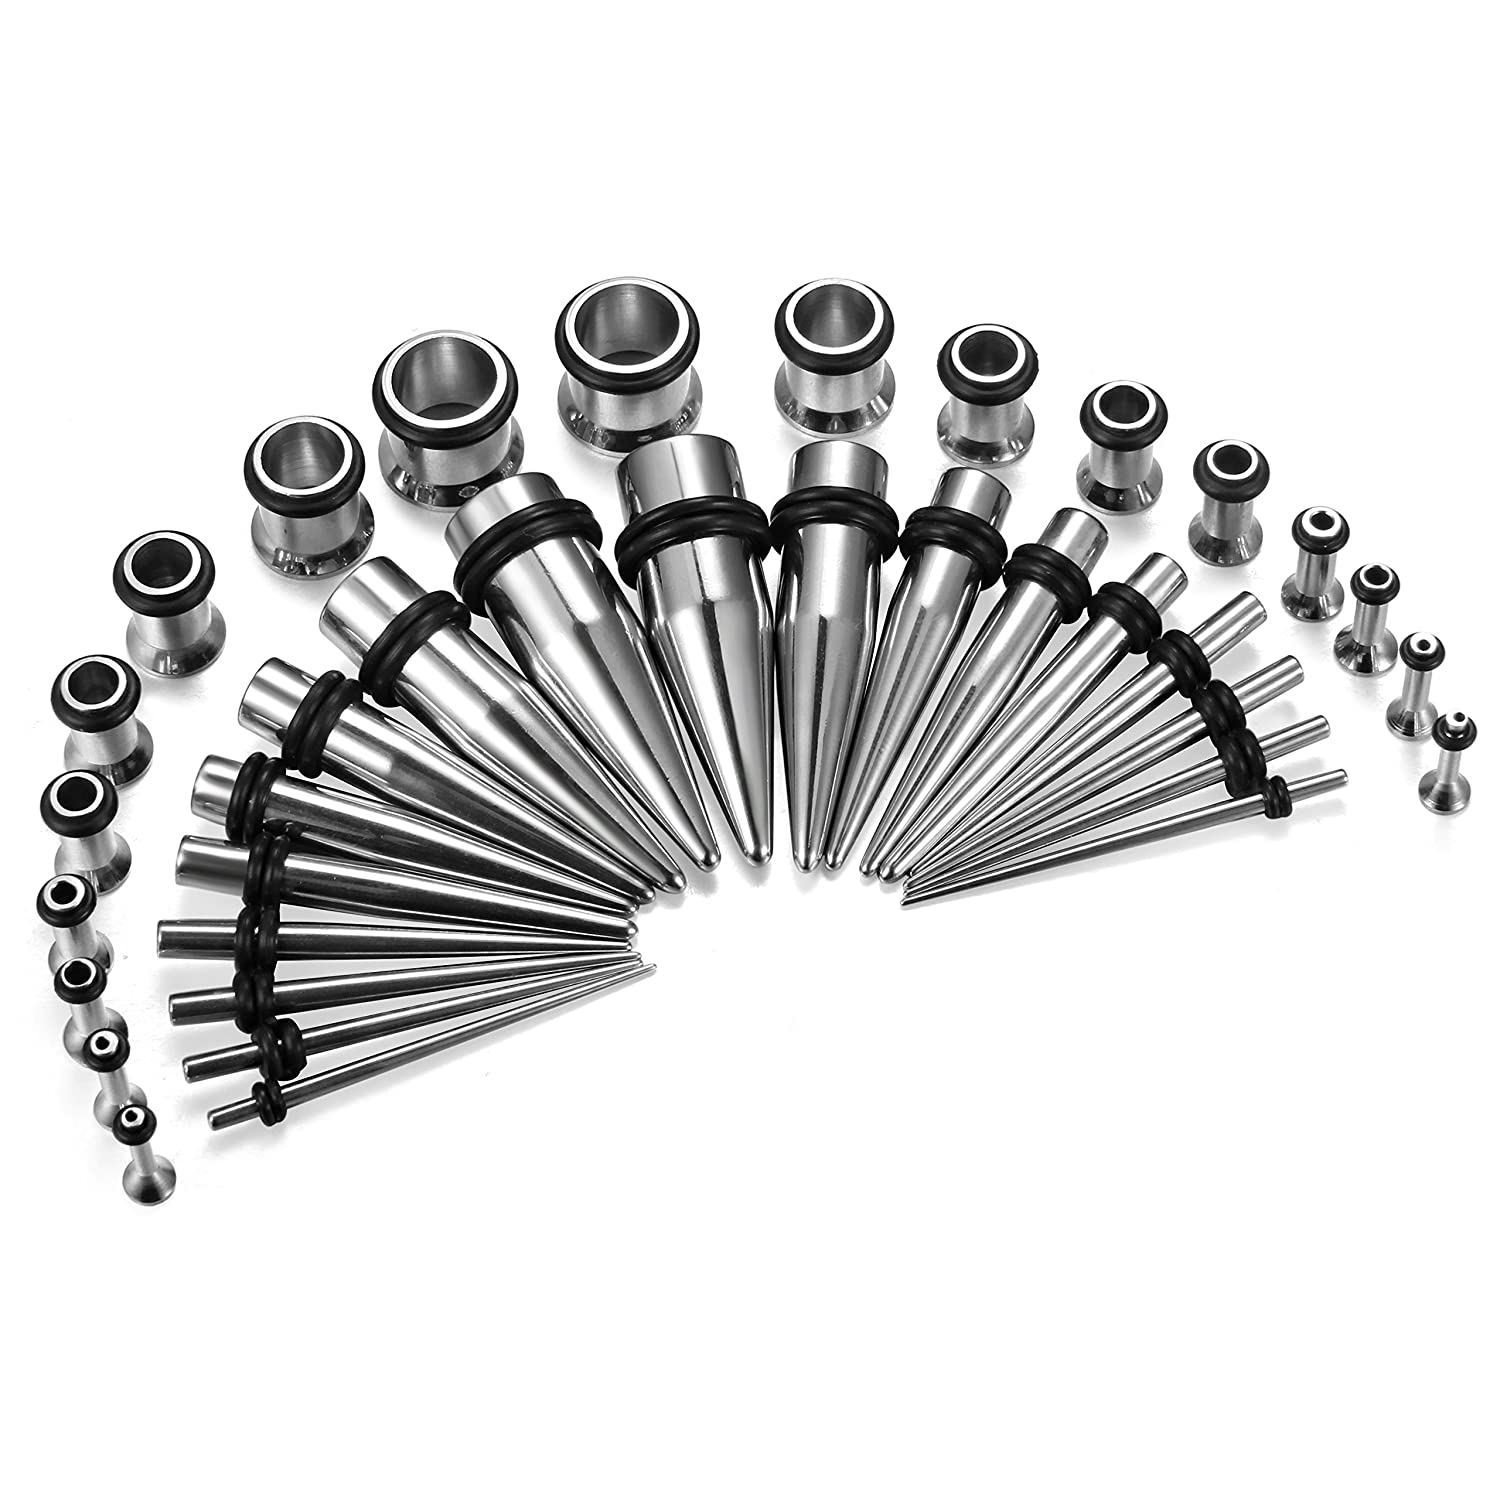 ORAZIO 16-36 PCS Stainless Steel Ear Stretching Taper and Tunnel Set -14G to 00 Gauge Silver Tone CC05S-ES36